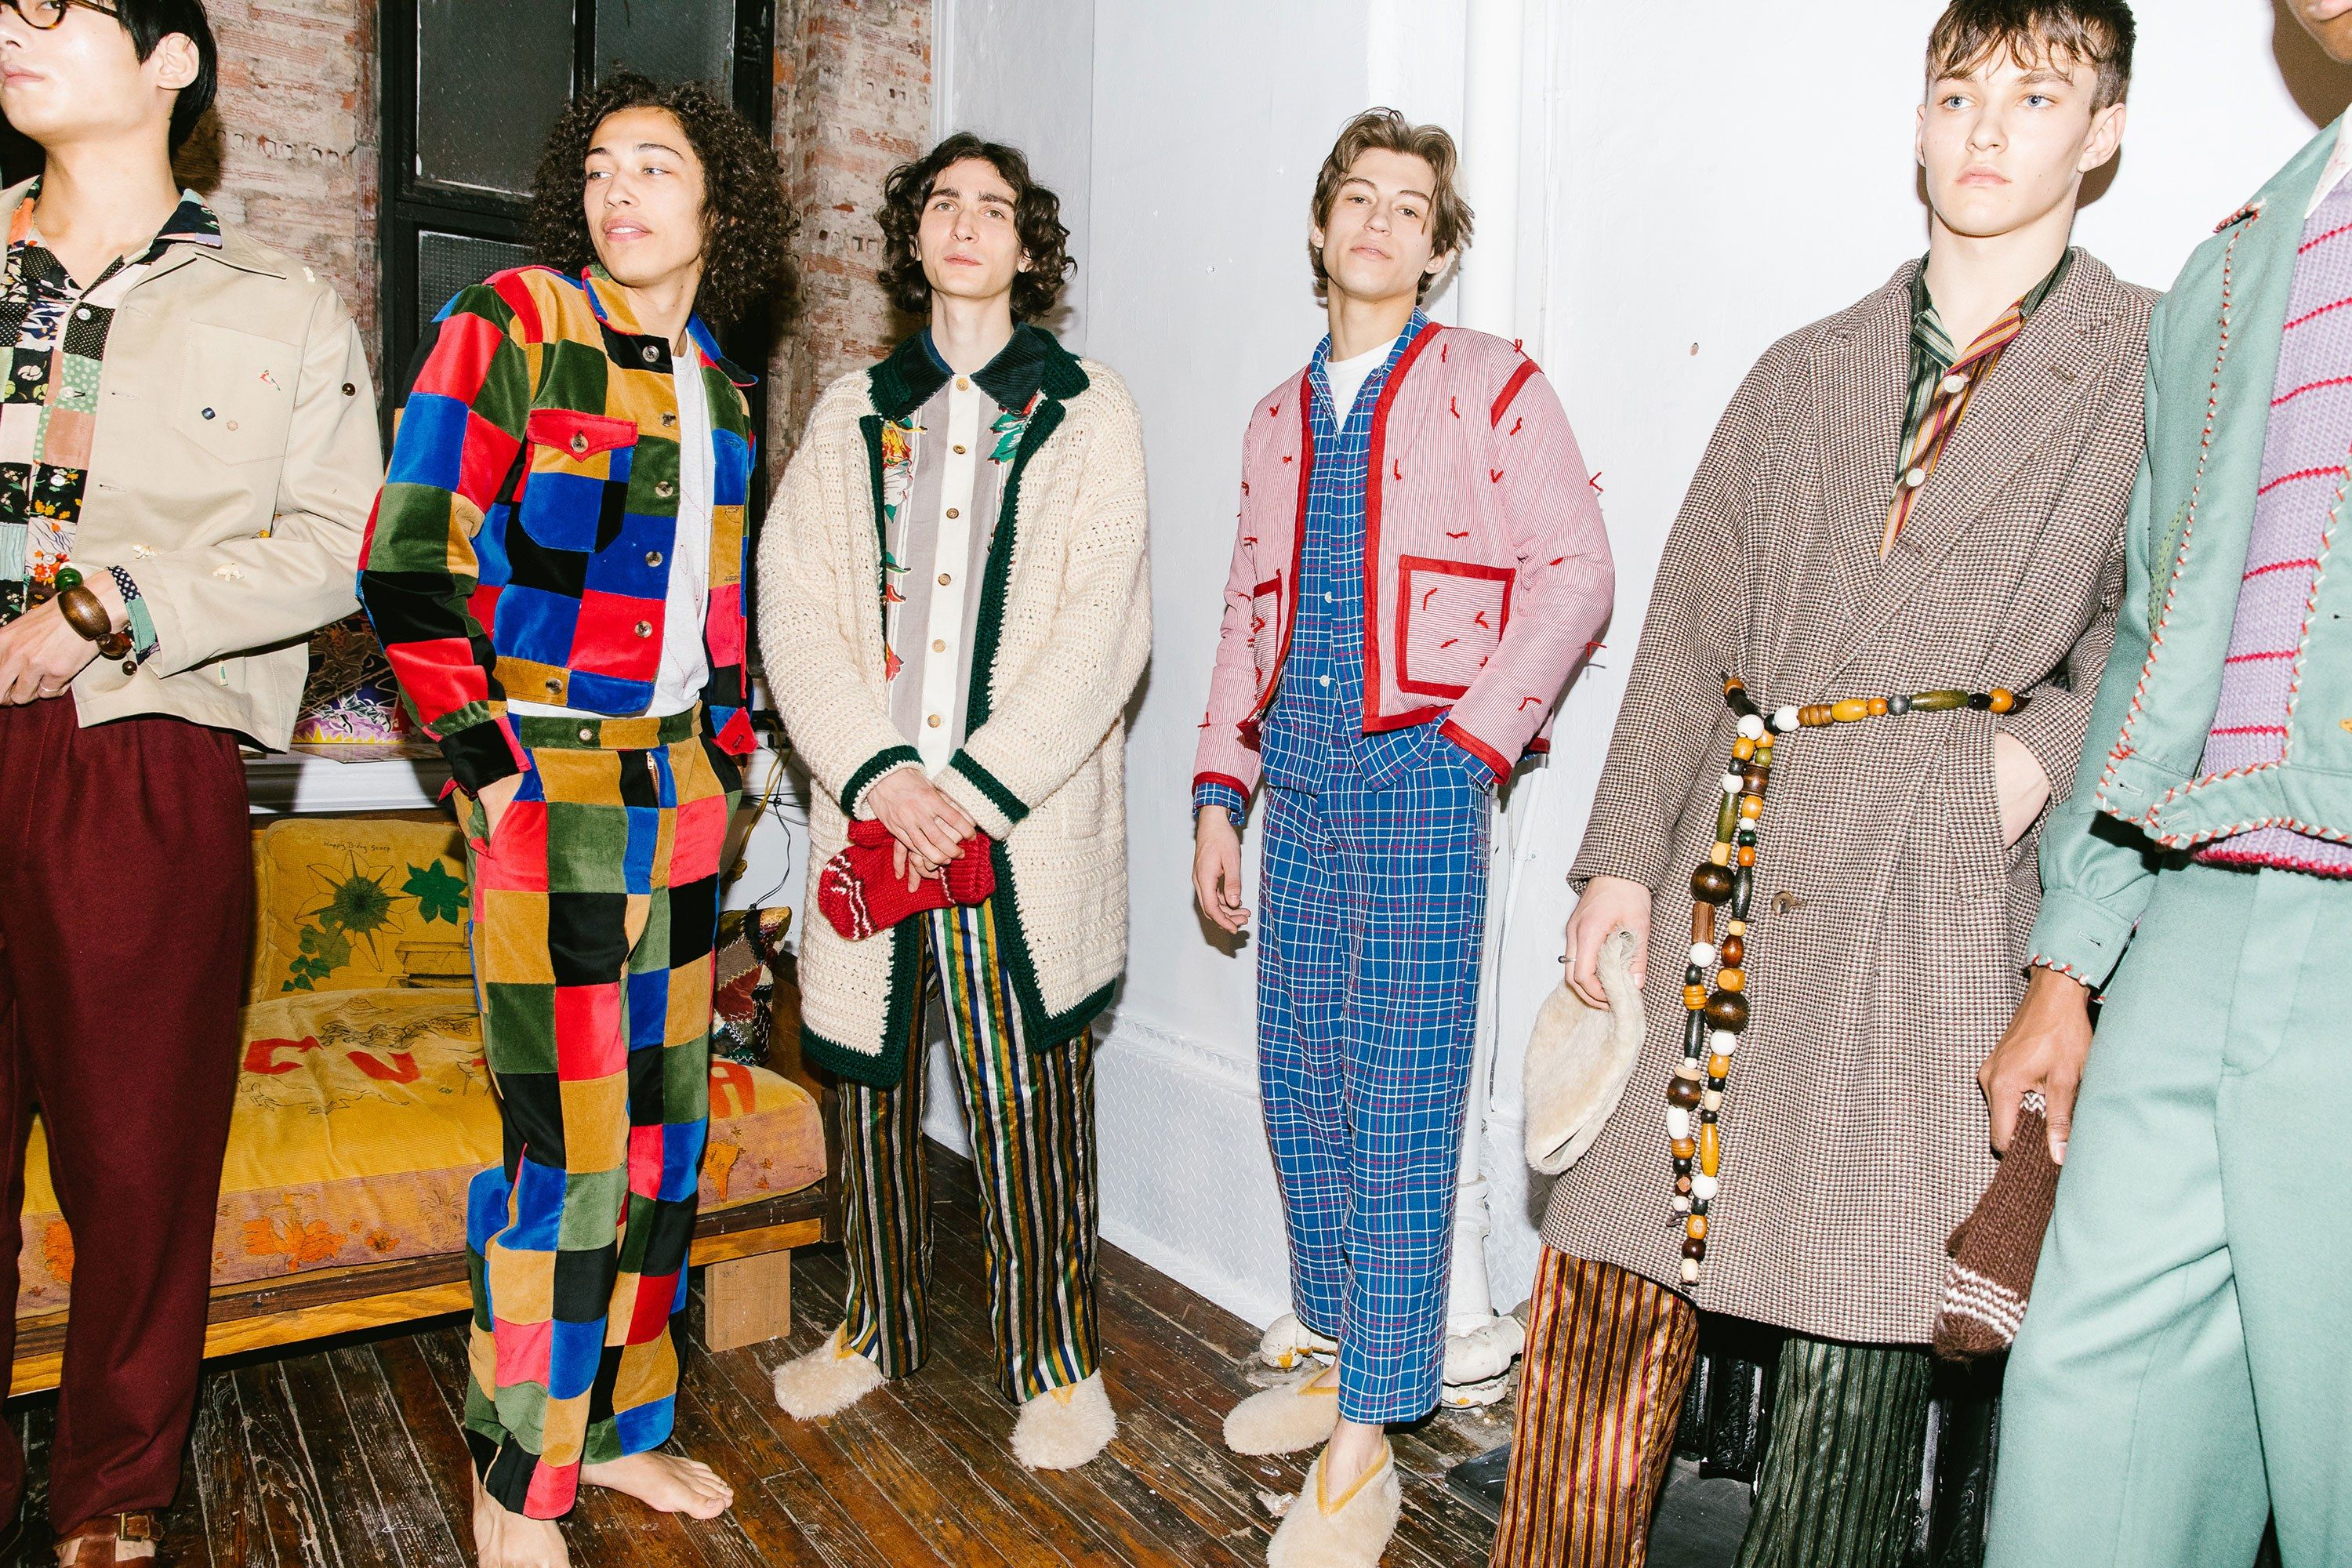 The Top 10 Shows Of New York Fashion Week Fall 2019 With Images New York Fashion Week New York Fashion Fashion